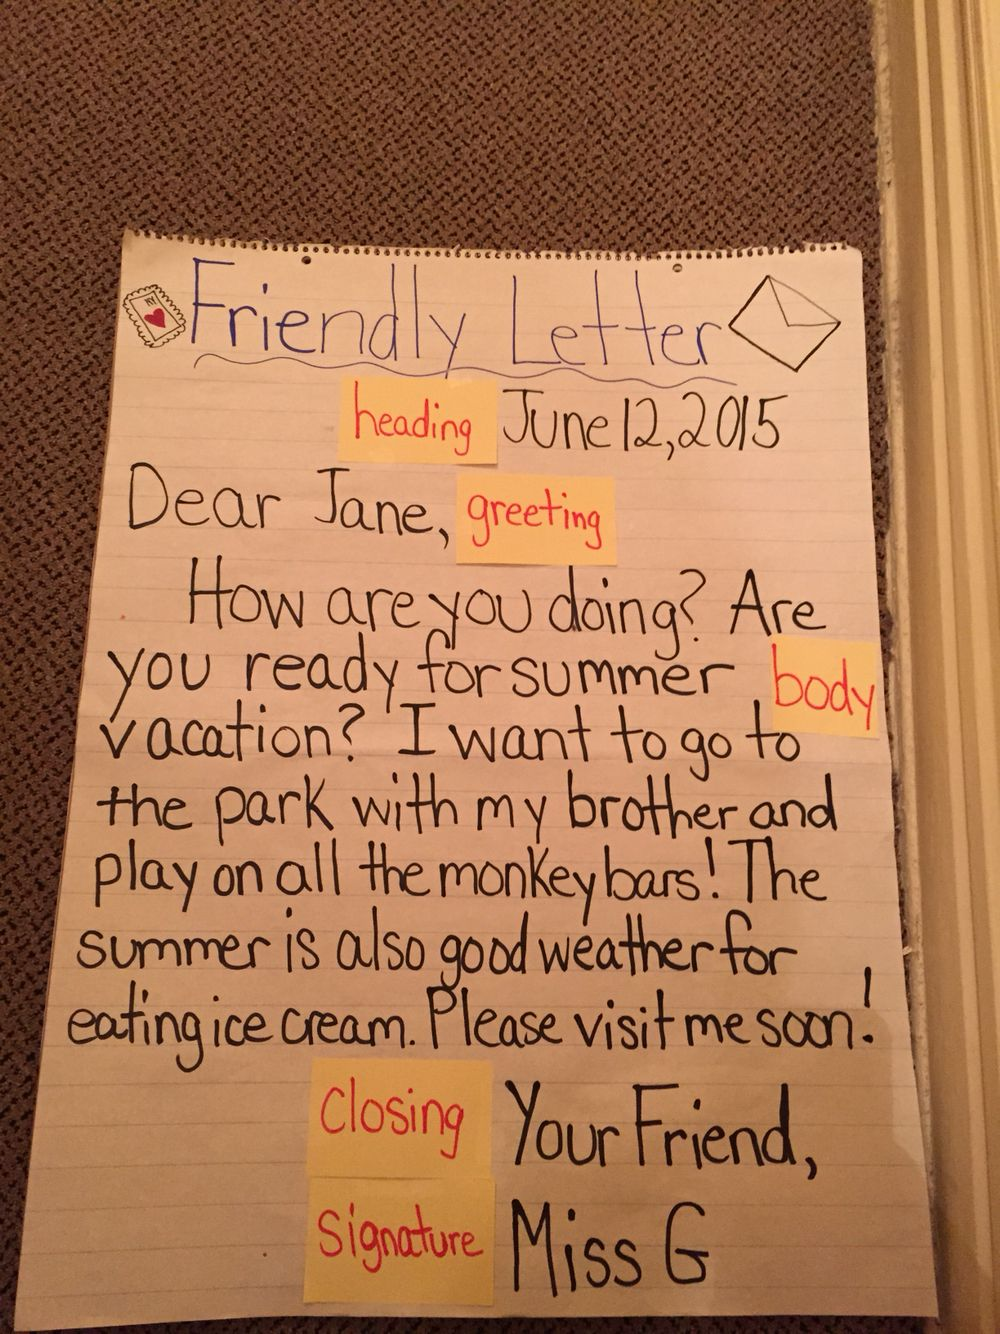 Friendly Letter Anchor Chart I Made For A 2nd Grade Class They Loved The Model And It Was A Great Addition To Te Friendly Letter Anchor Charts 2nd Grade Class [ 1334 x 1000 Pixel ]